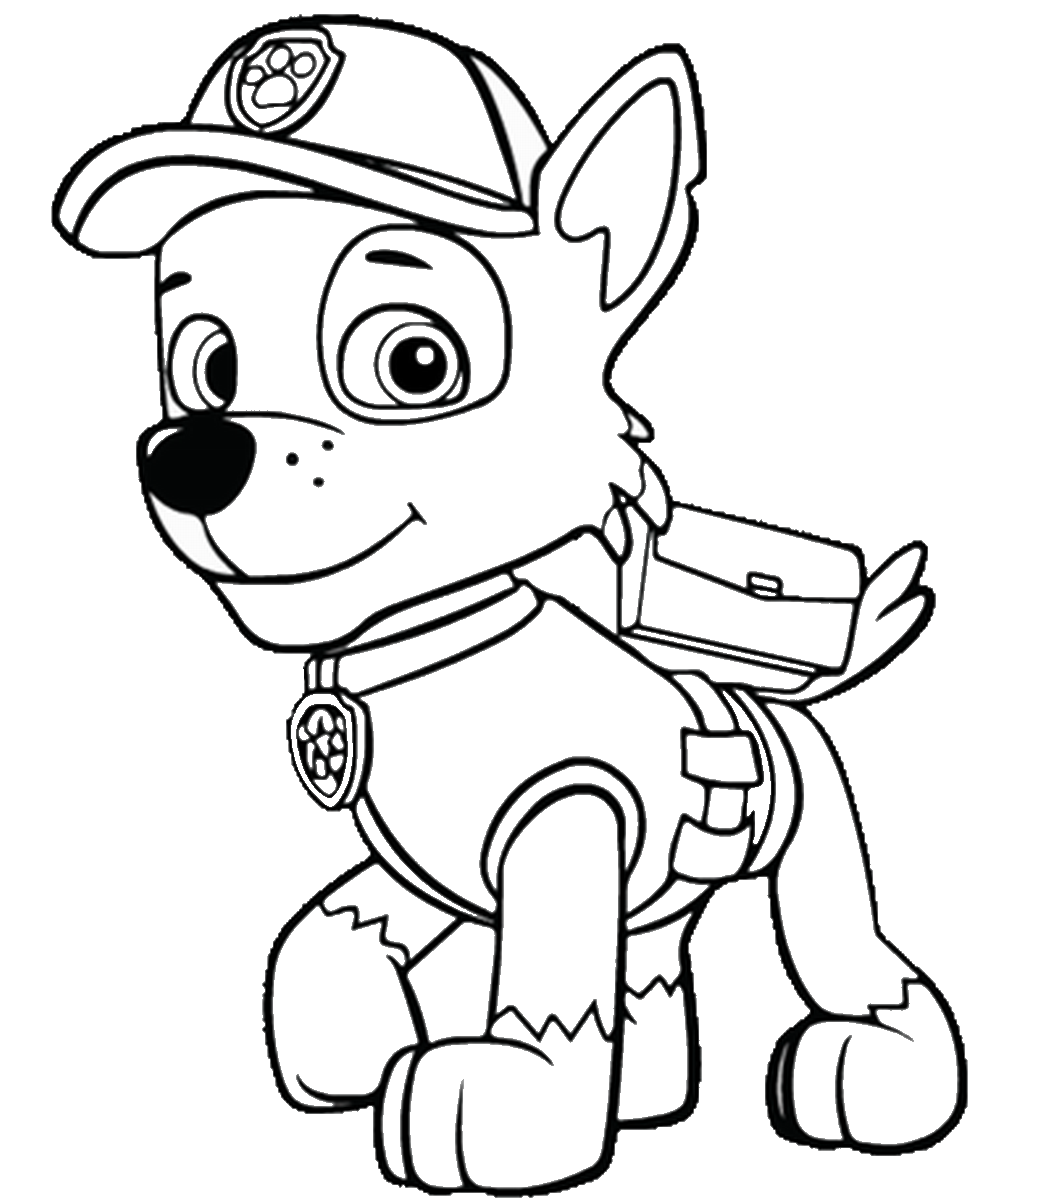 paw patrol coloring sheets printable paw patrol coloring pages printable patrol sheets paw coloring